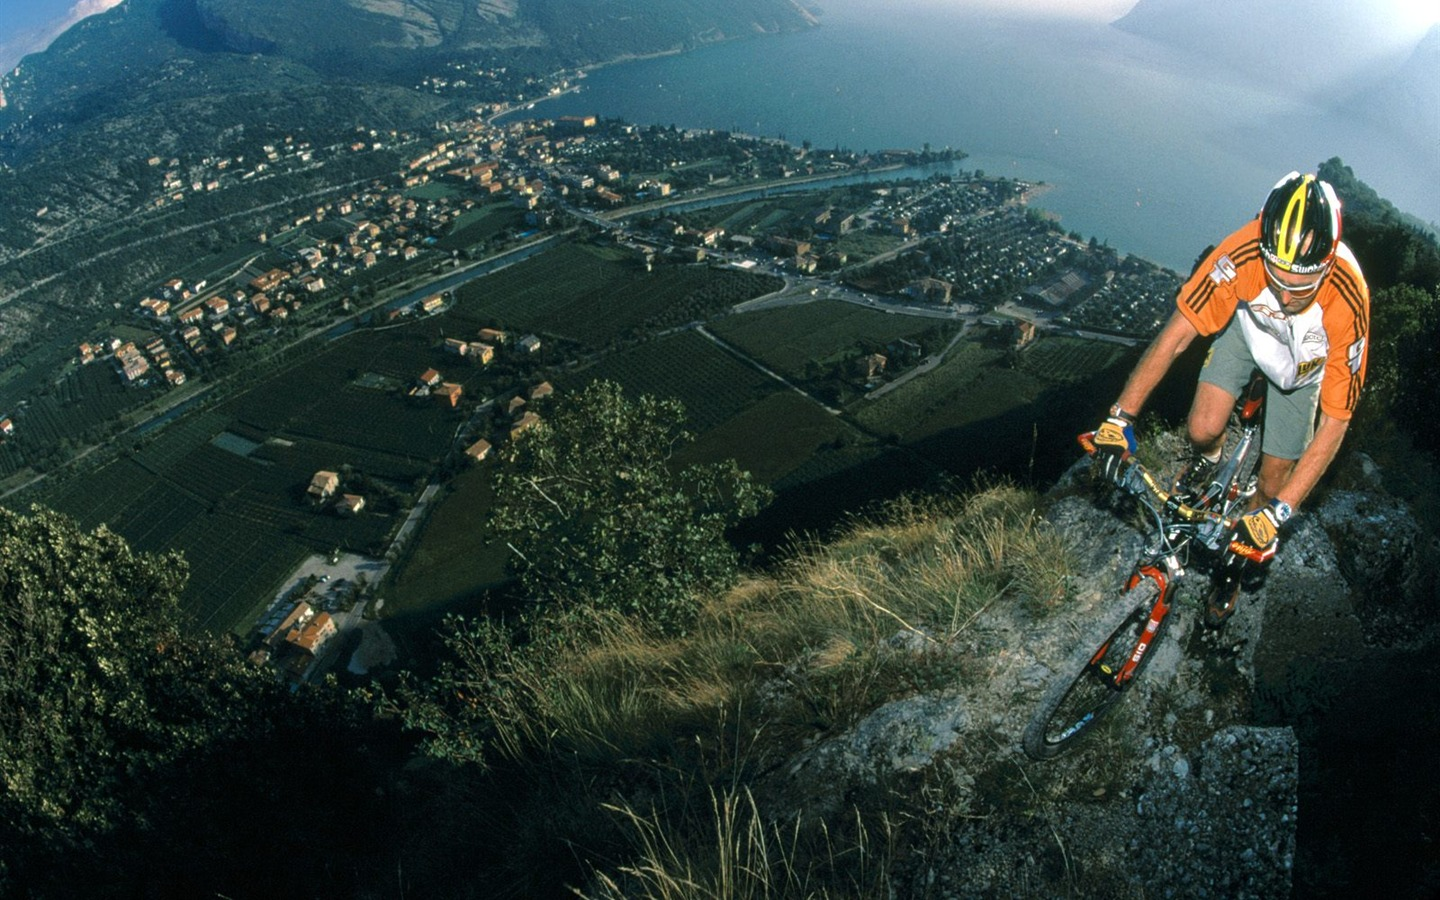 Outdoor Sports Wallpaper 24 Wallpapers: Mountain Biking-outdoor Sports Wallpaper